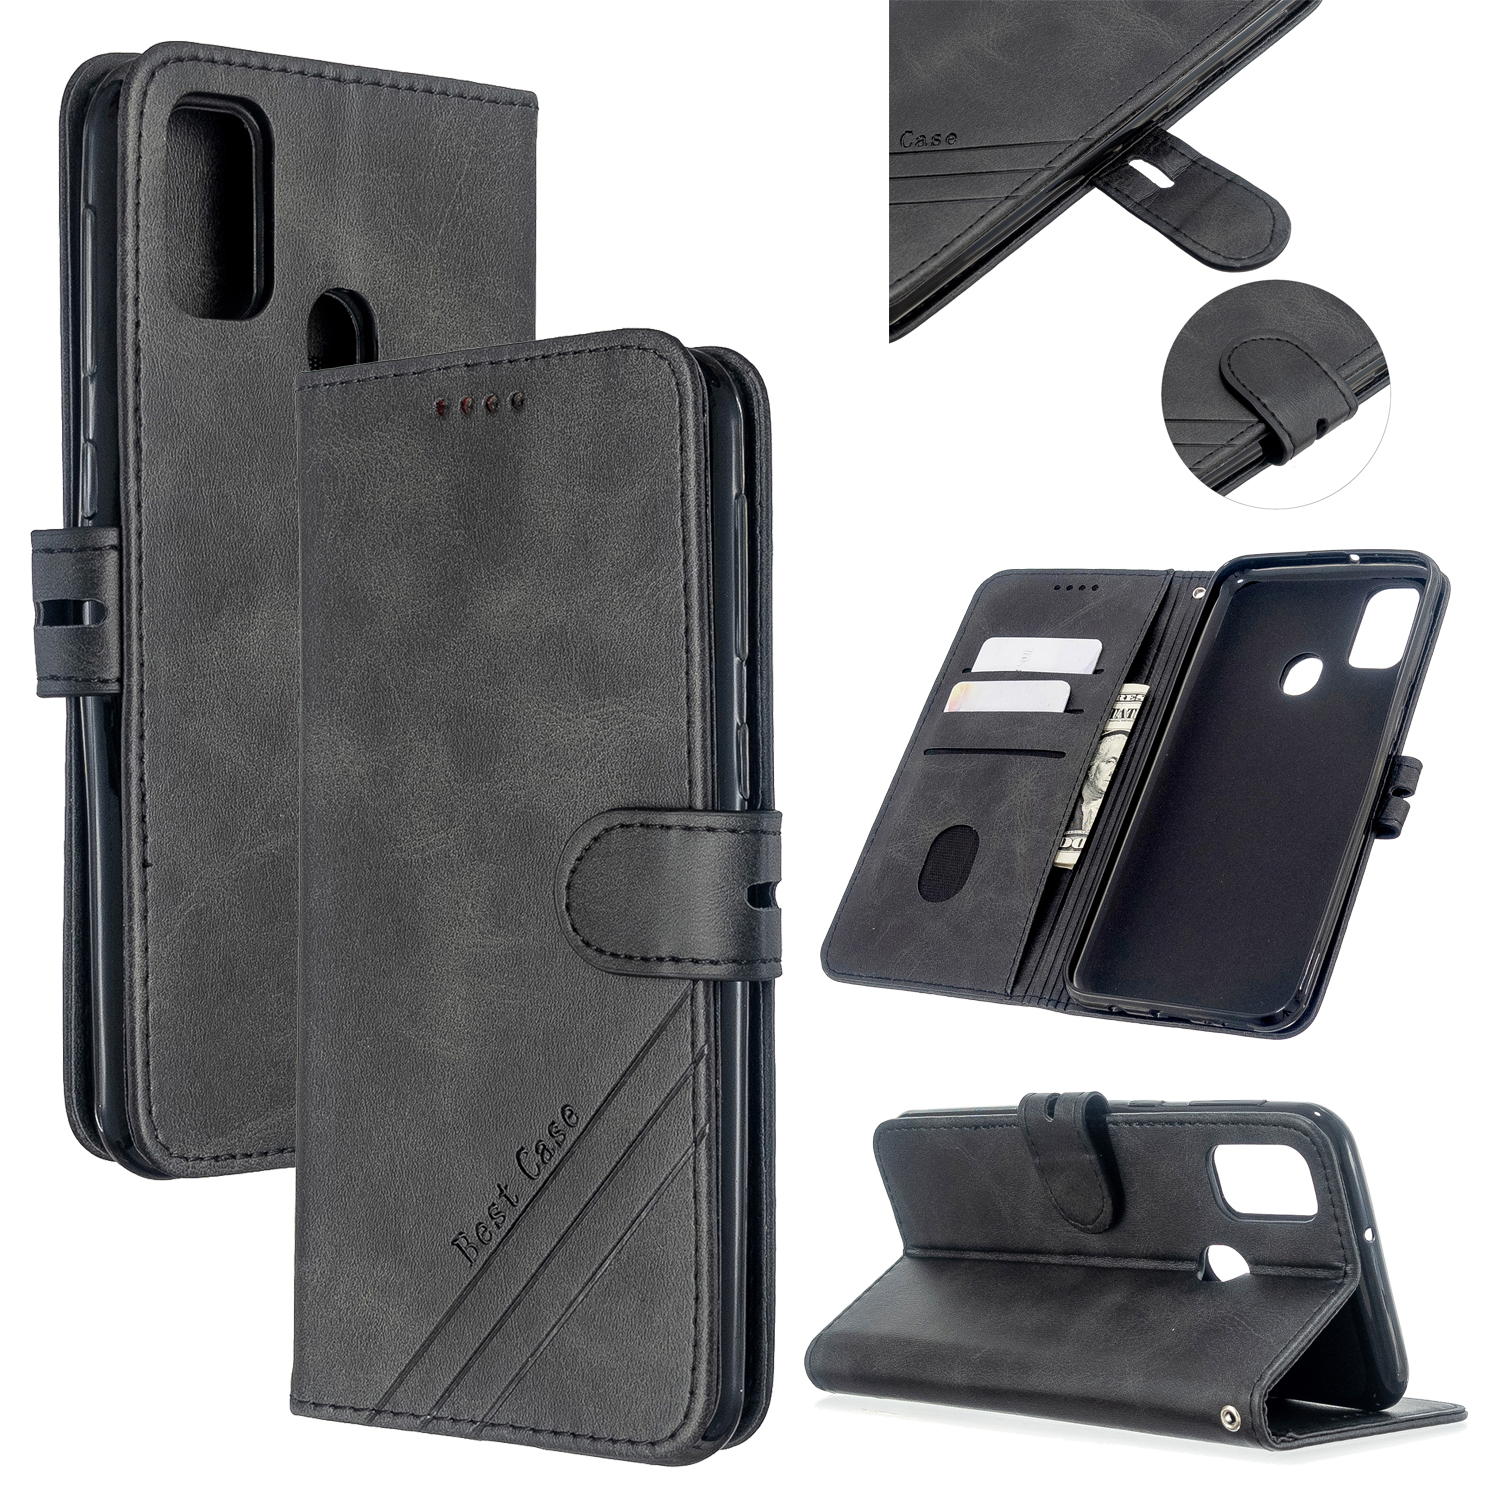 For Samsung A51/A71/M30S Case Soft Leather Cover with Denim Texture Precise Cutouts Wallet Design Buckle Closure Smartphone Shell  black